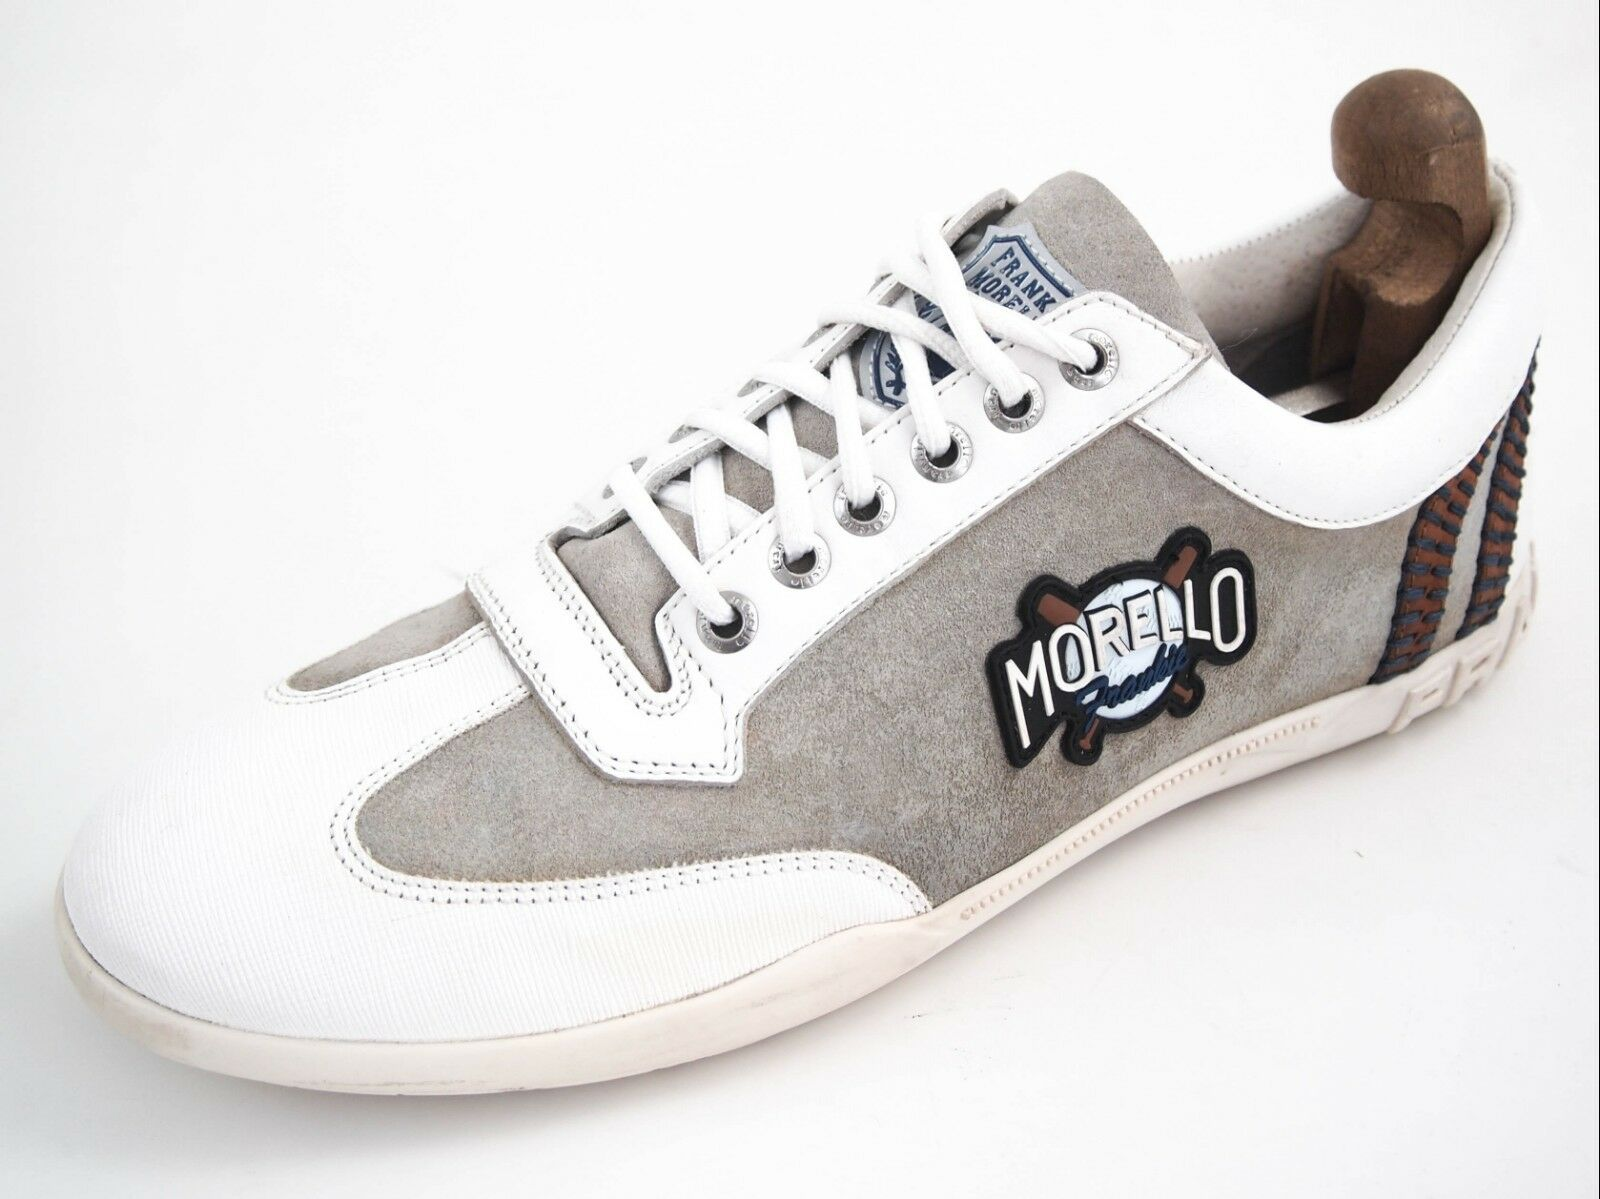 Frankie Morello fashion sneakers,Blancleather, homme ChaussuresTaille US 11 EU 44210